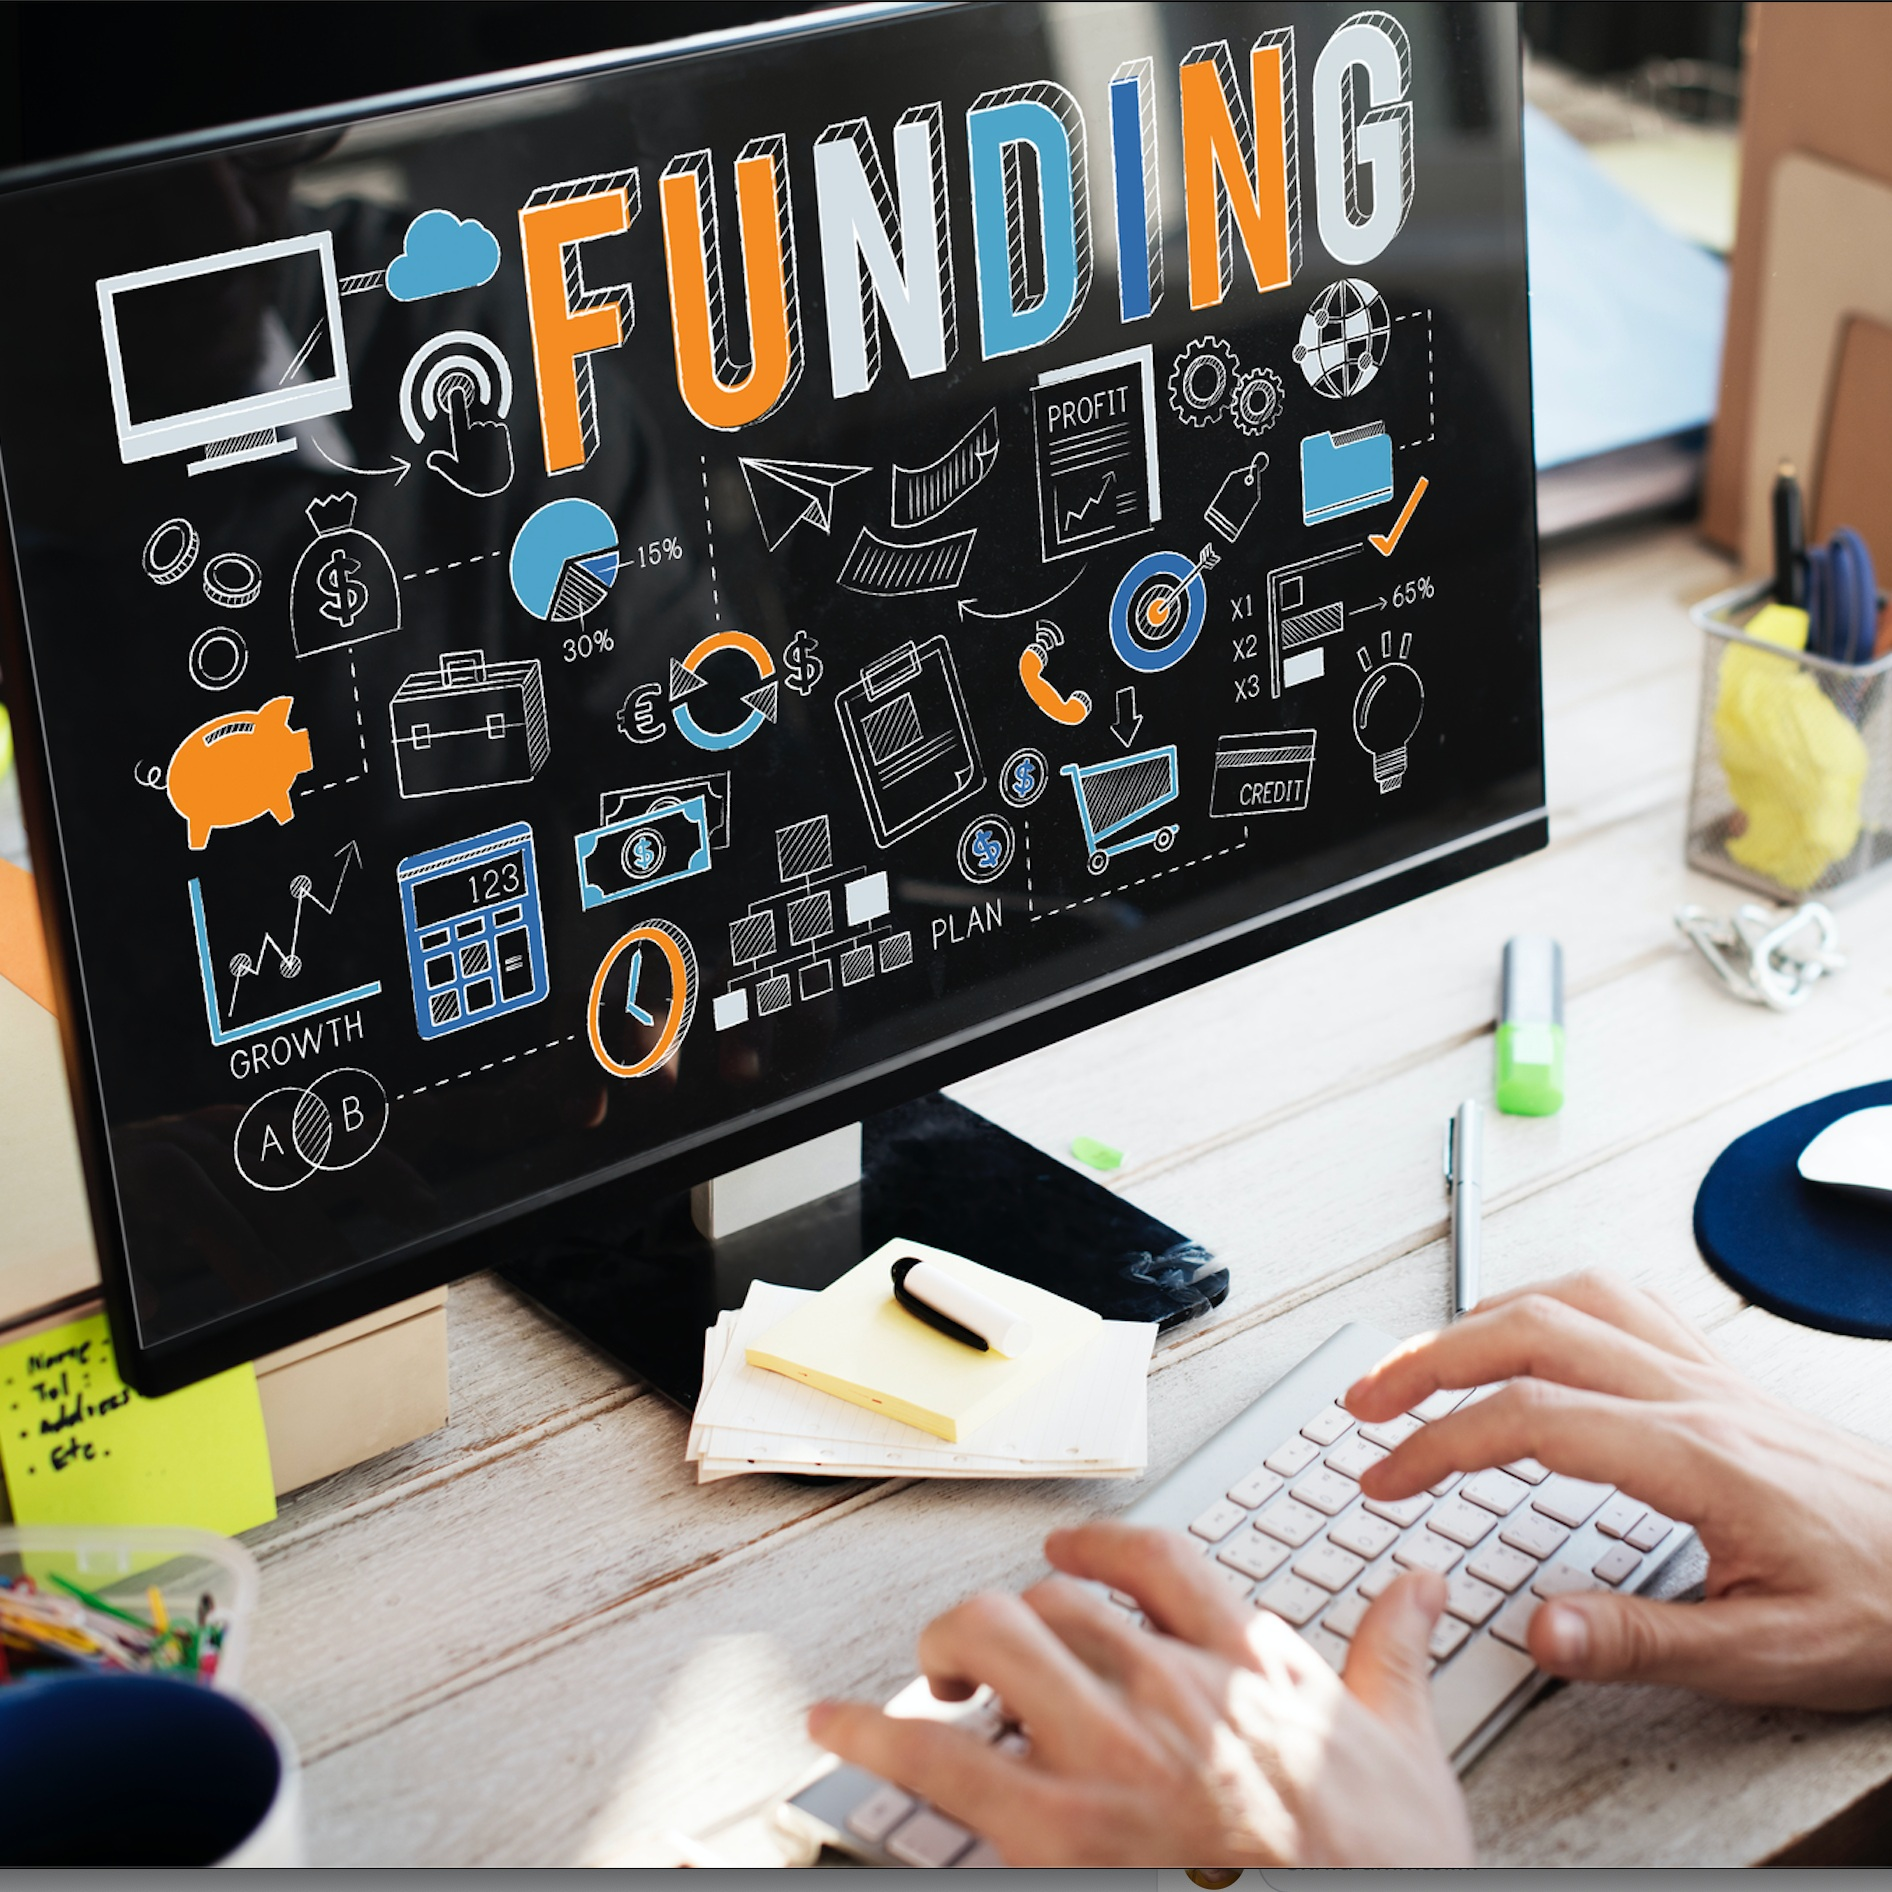 FUNDING - We help you prepare for fundraising for your startup or project, whether from an investorr, a grant scheme, crowdfunding, or a tax deduction. Pitchdecks and grant proposals are our speciality.We also make sure you deliver those reports to the grant providers on time and remind you when it's time to start peparing for the next deadline.